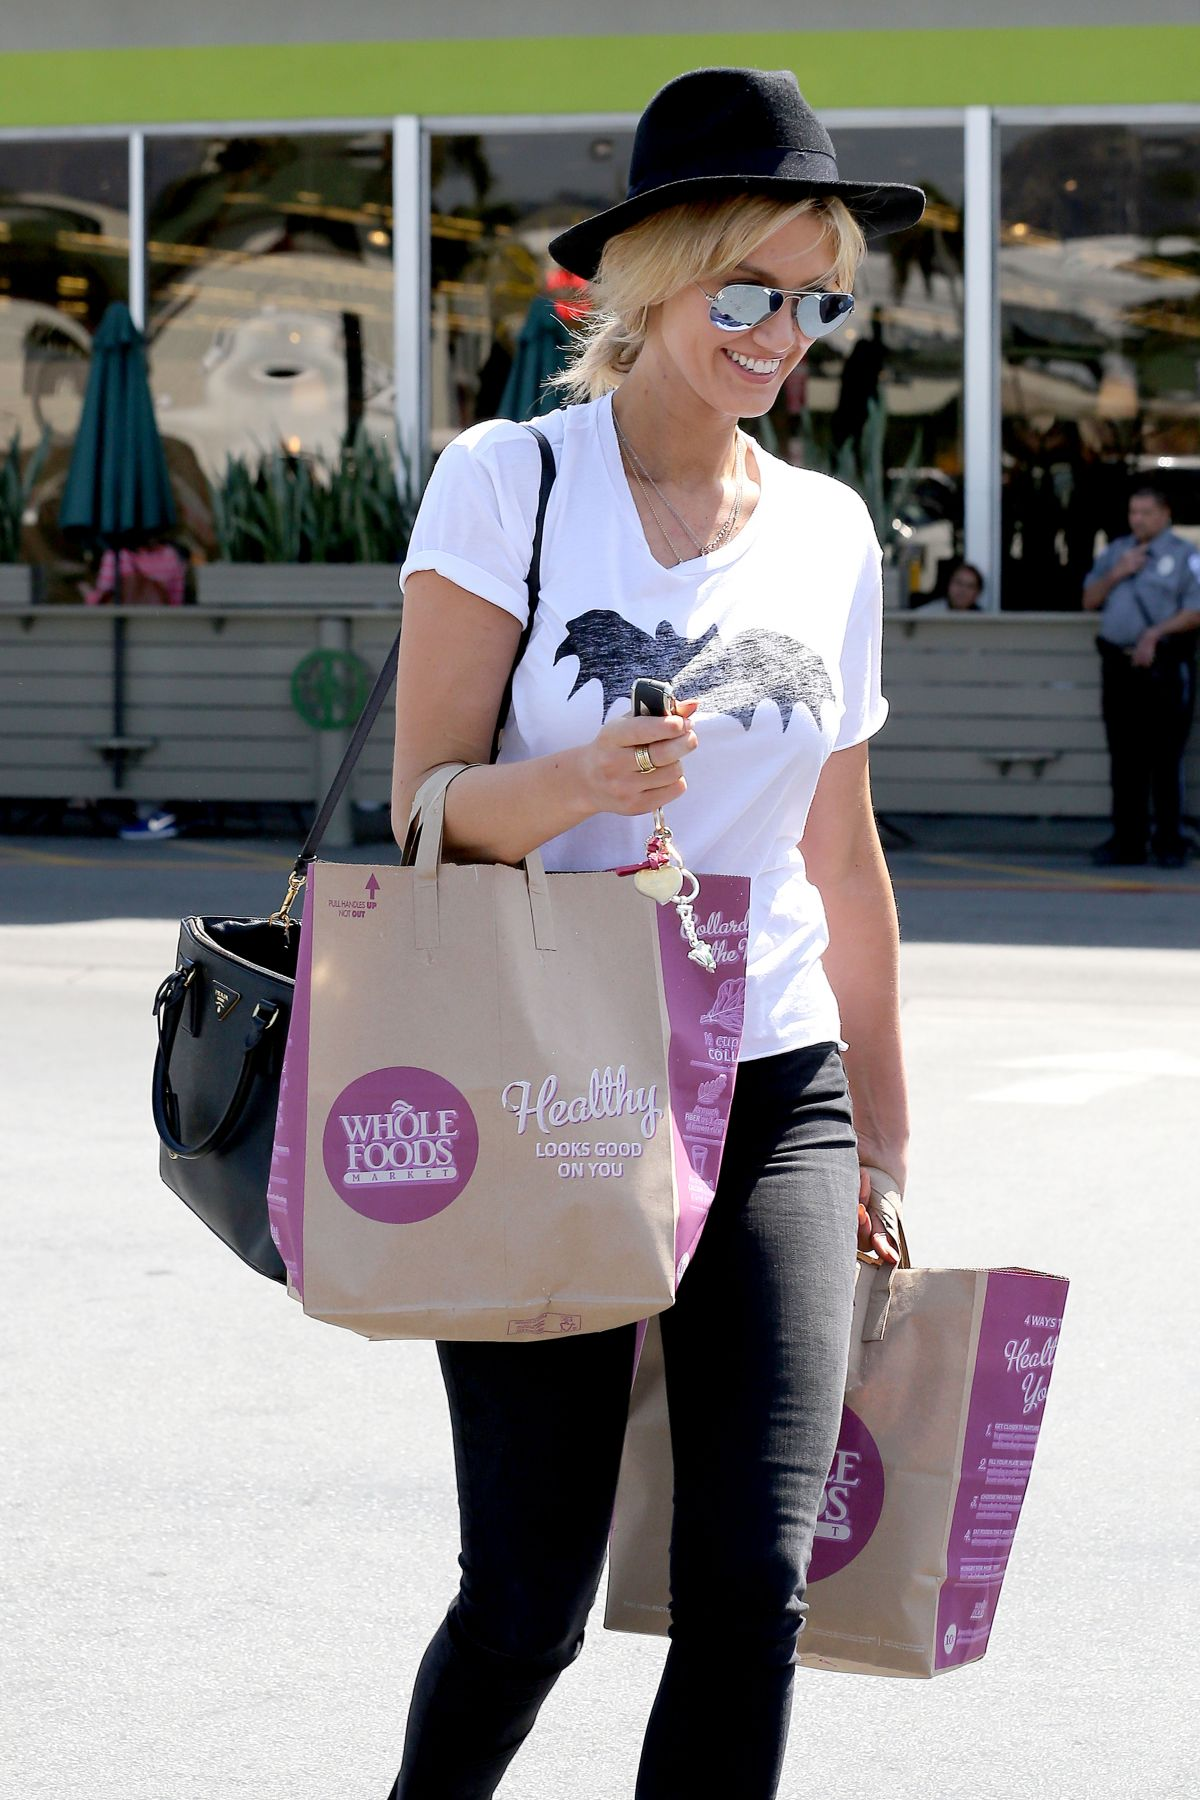 DELTA GODREM Shoping at Whole Foods in Los Angeles